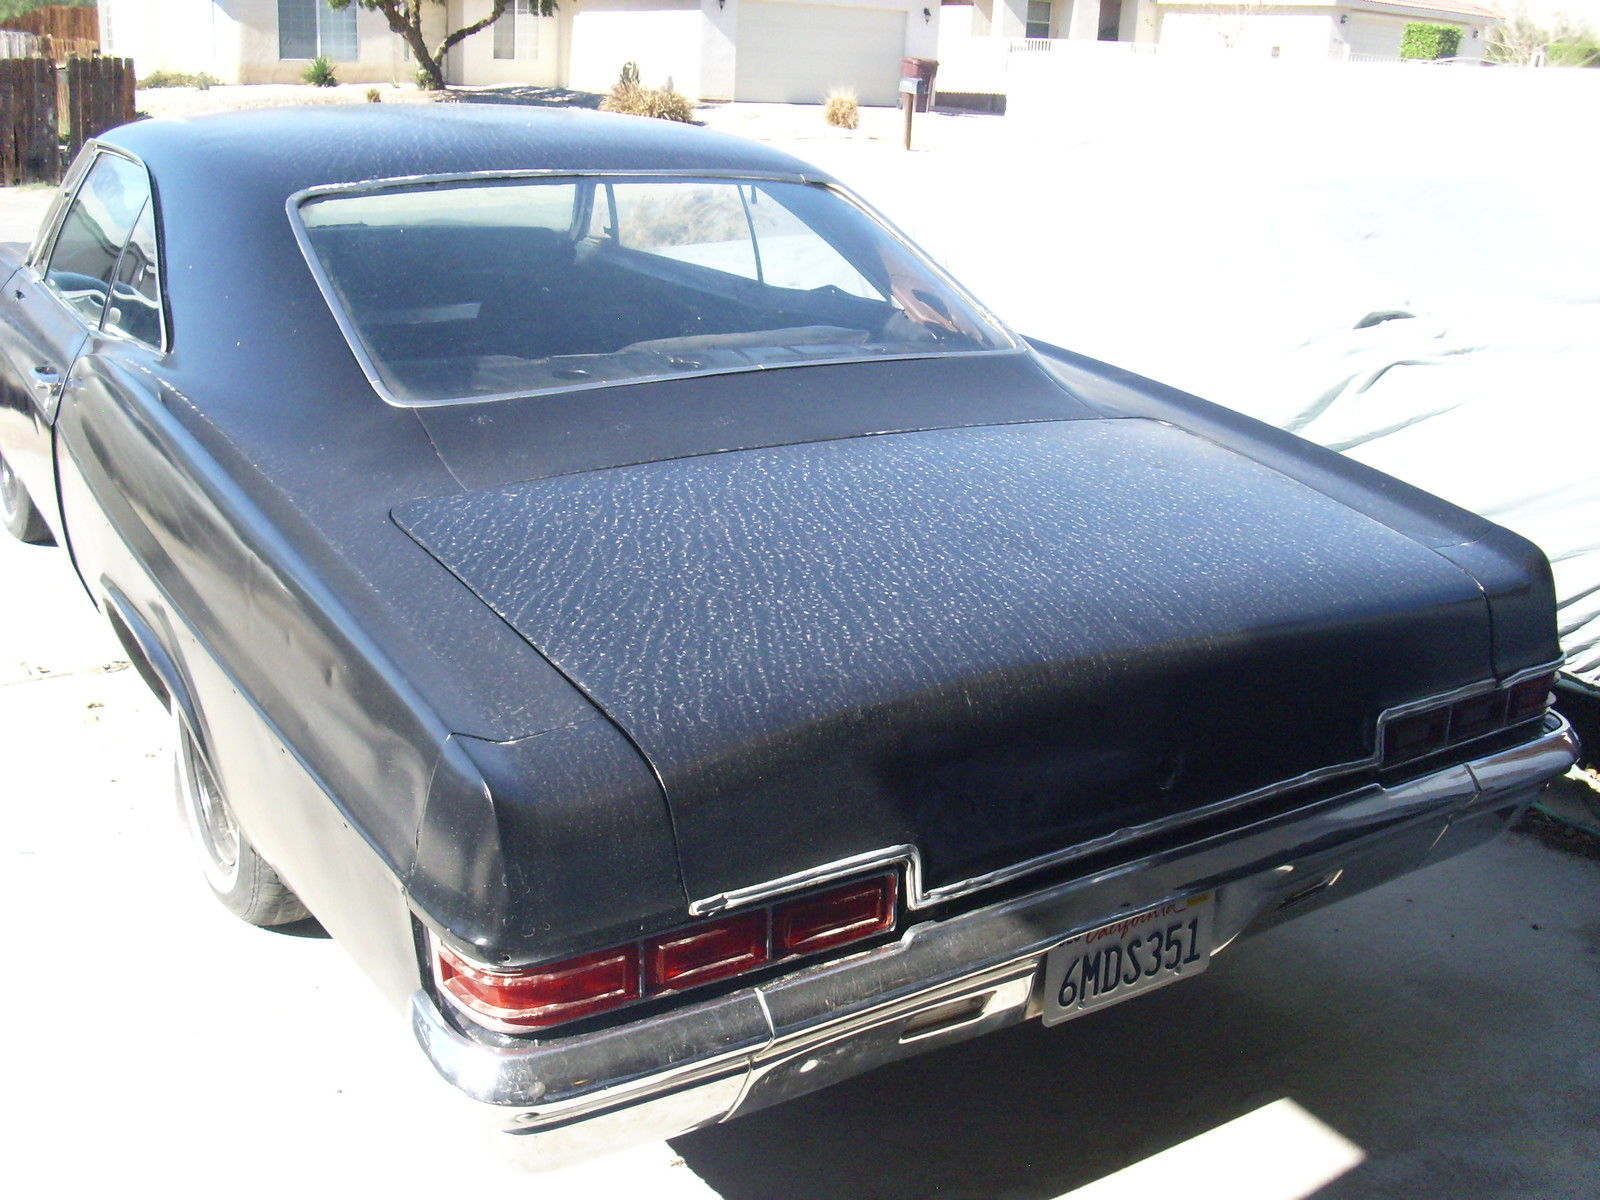 Classic 1966 Chevrolet Impala Ss Project Lowrider Hot Rod 656667 Chevy 2 Door 6566676869